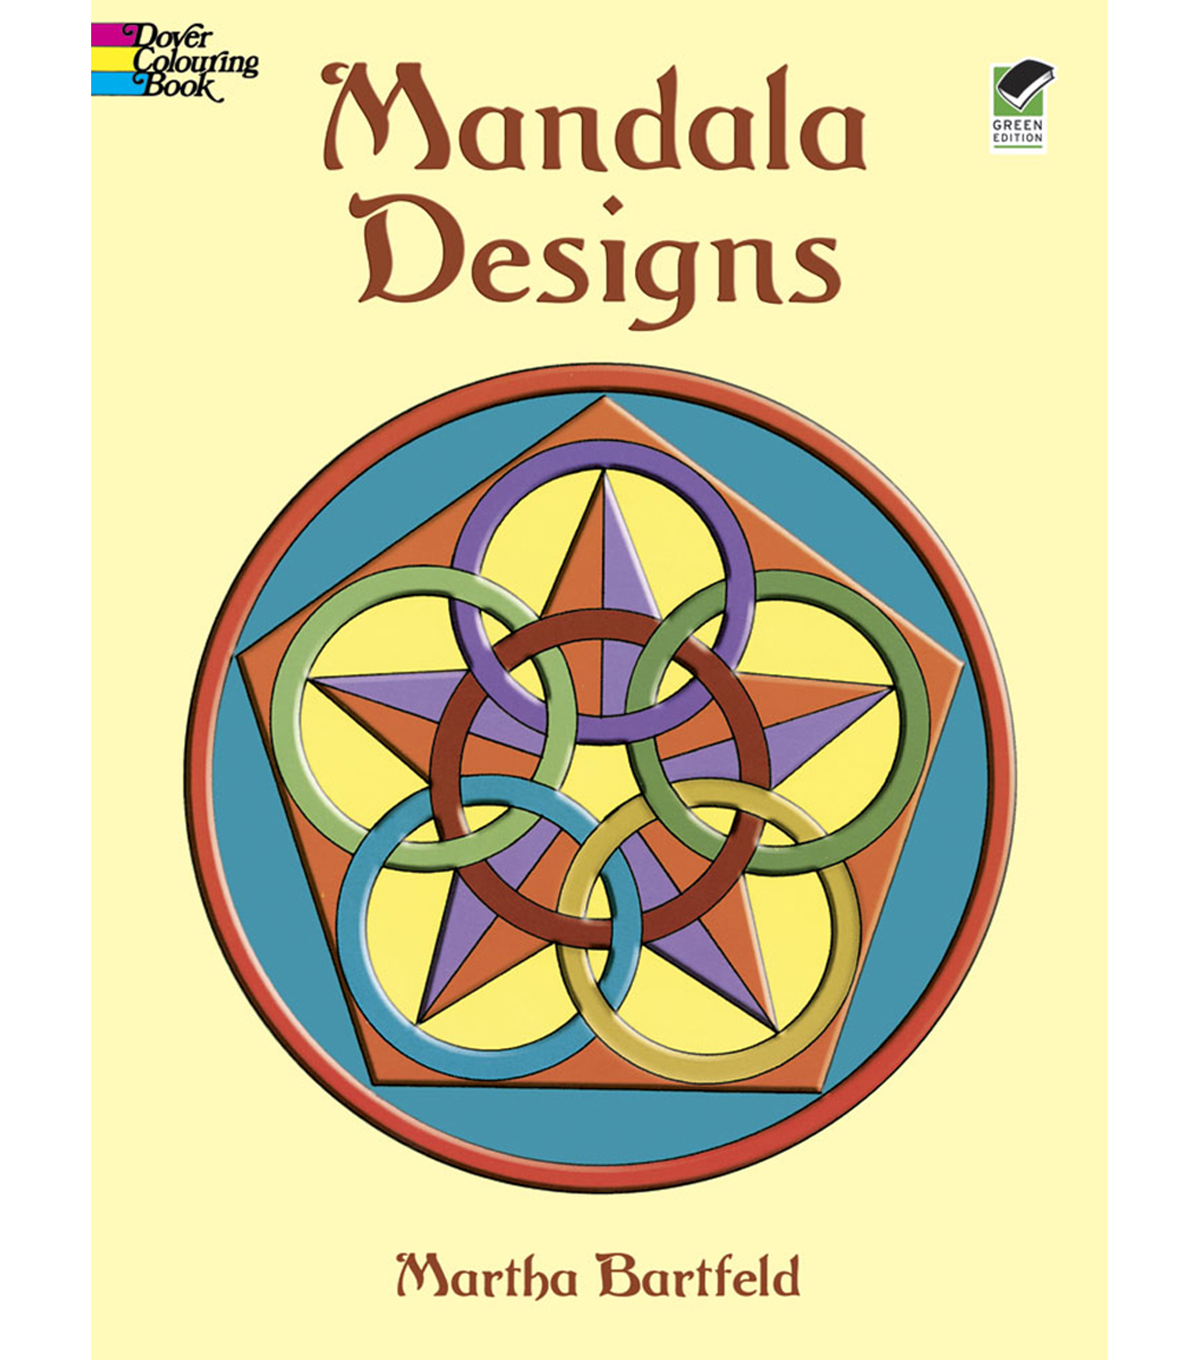 Mandala Designs Coloring Book for Adults | JOANN